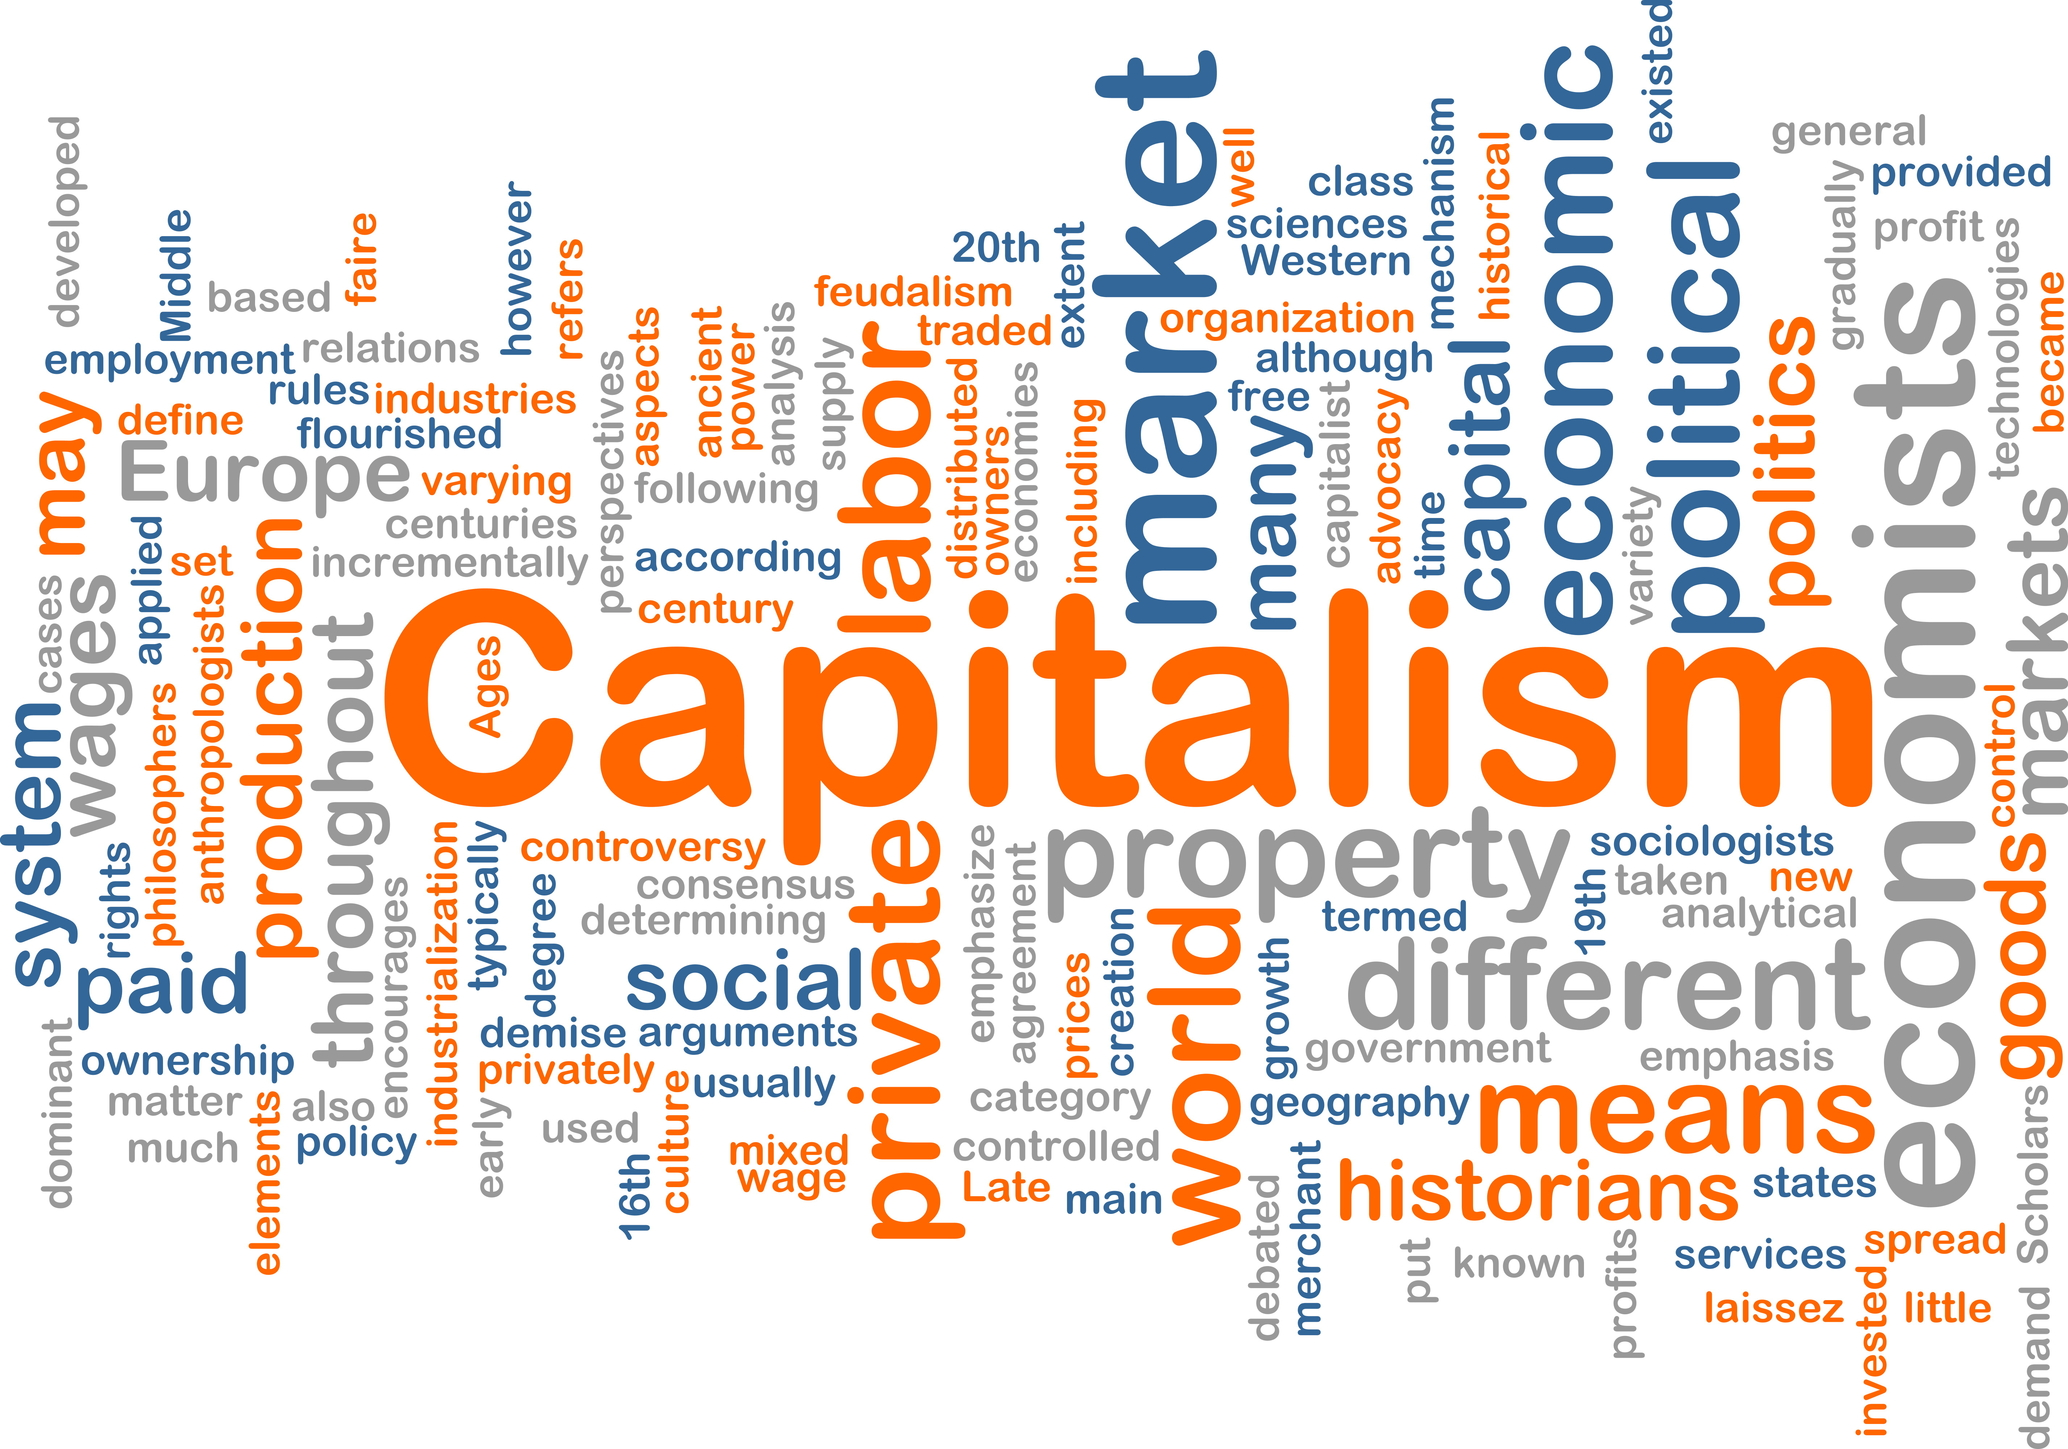 capitalist society The essential ideas concerning the society of free and associated producers - the post-capitalist society - as well as the conditions of its realisation, elaborated by marx in his writings of different periods, are already found in the communist manifesto in a condensed form in the text that follows we argue that the.